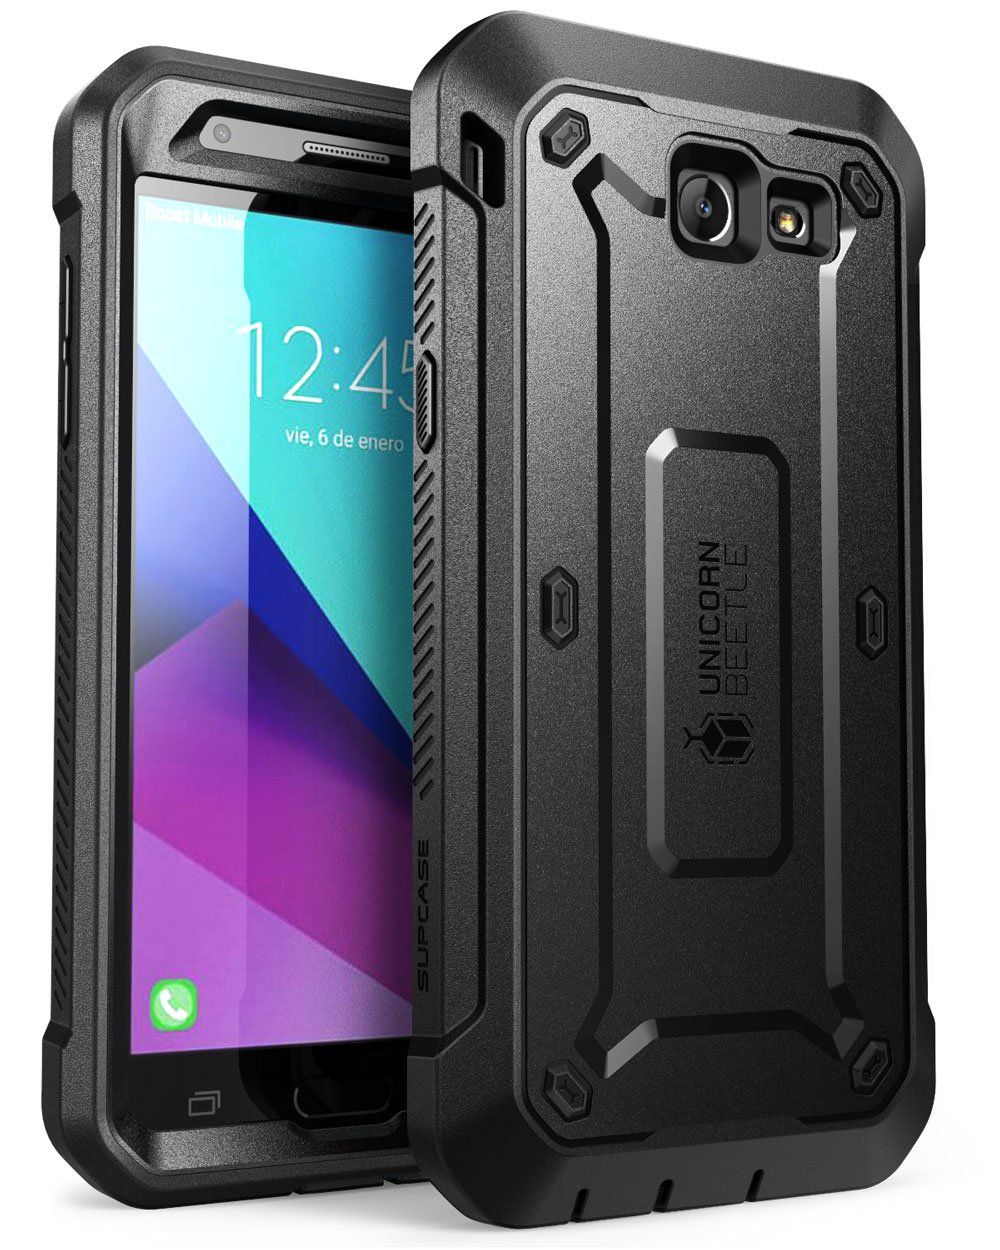 Samsung Galaxy J7 2017, Galaxy Halo Case, SUPCASE [UB Pro Series] Full-body Rugged Holster with Built-in Screen Protector for Galaxy Halo/J7 2017 (SM-J727), Not fit J7 2018 (SM-J737) (Black)